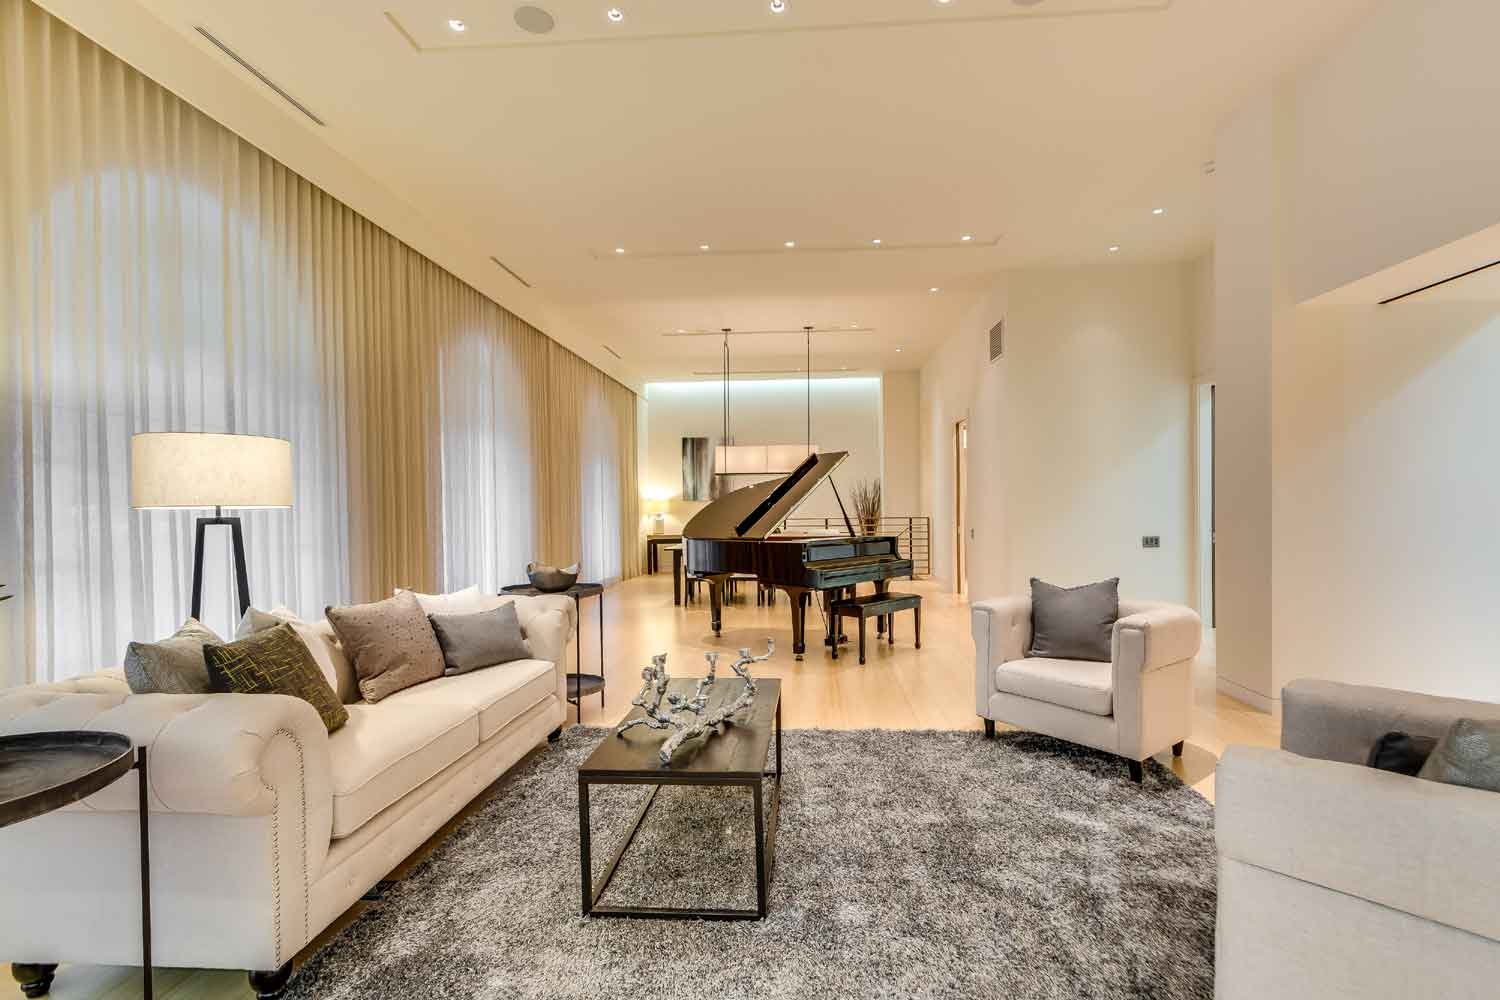 This contemporary two-story condominium is situated in a prestigious residential building on East Lake Shore Drive, close to the Magnificent Mile and two of Chicago's top performing arts venues: the Goodman Theatre and the Chicago Theatre. The residence features grand-scale living and entertaining areas with spectacular views of Lake Michigan.